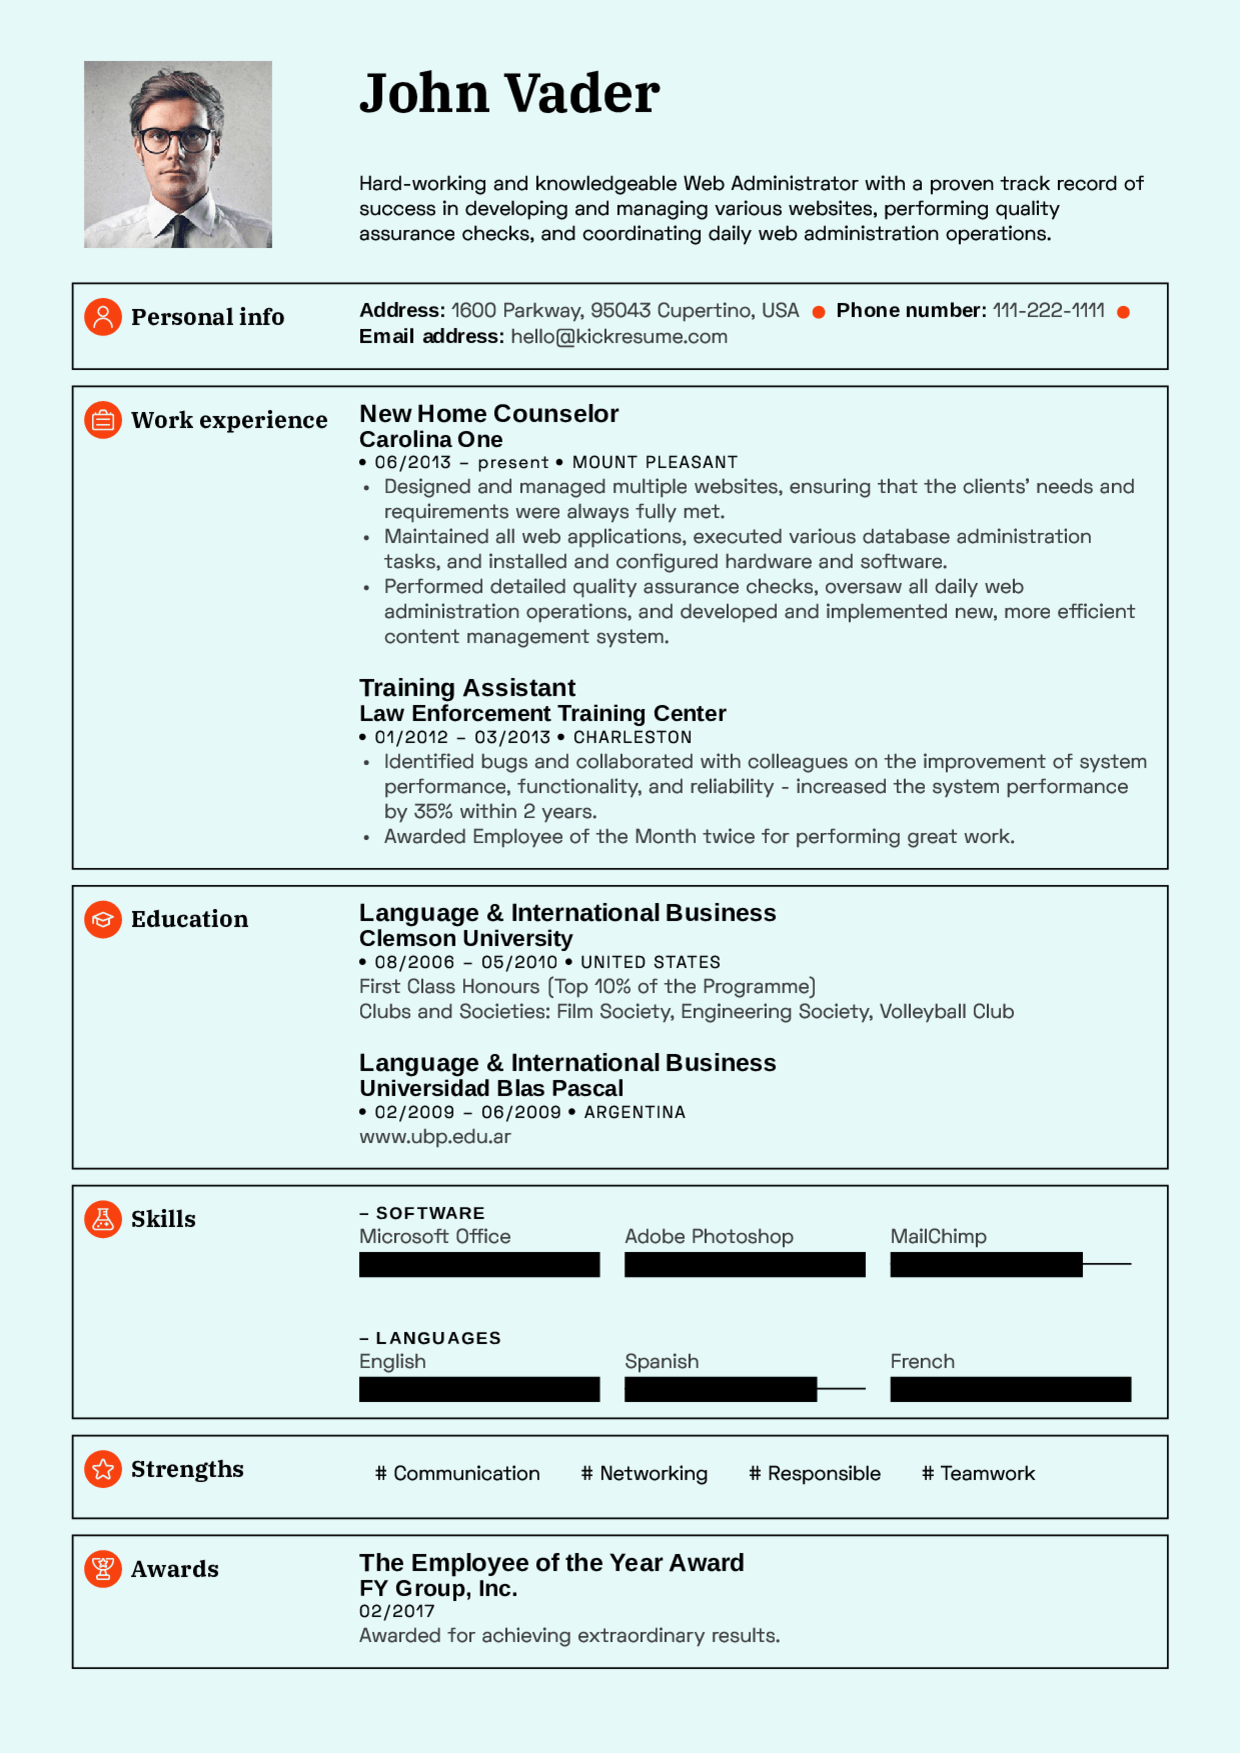 create beautiful resume and cover letter in minutes standard